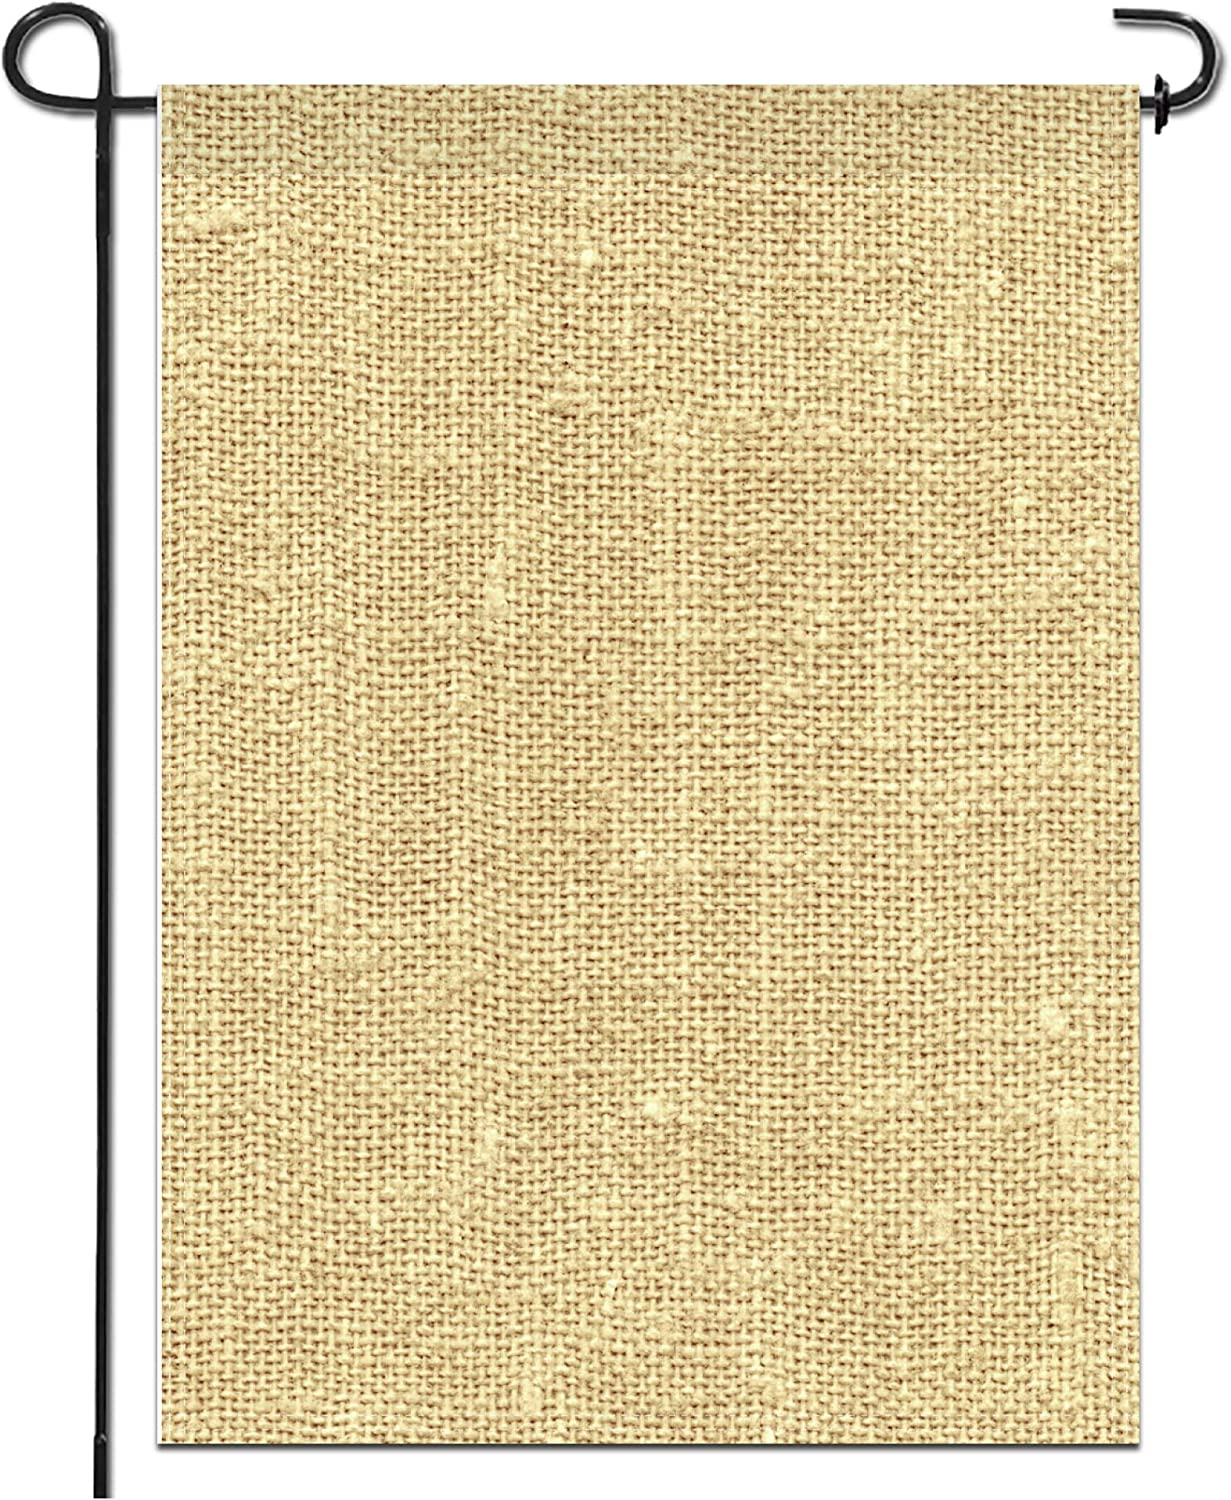 Anley Blank Burlap Garden Flag - DIY Personalized Craft Banner for Custom Outdoor Yard Decoration Sign Design - Crayon, Paint, Embroidery & Heat Press Transfer Vinly - 18 x 12.5 Inch